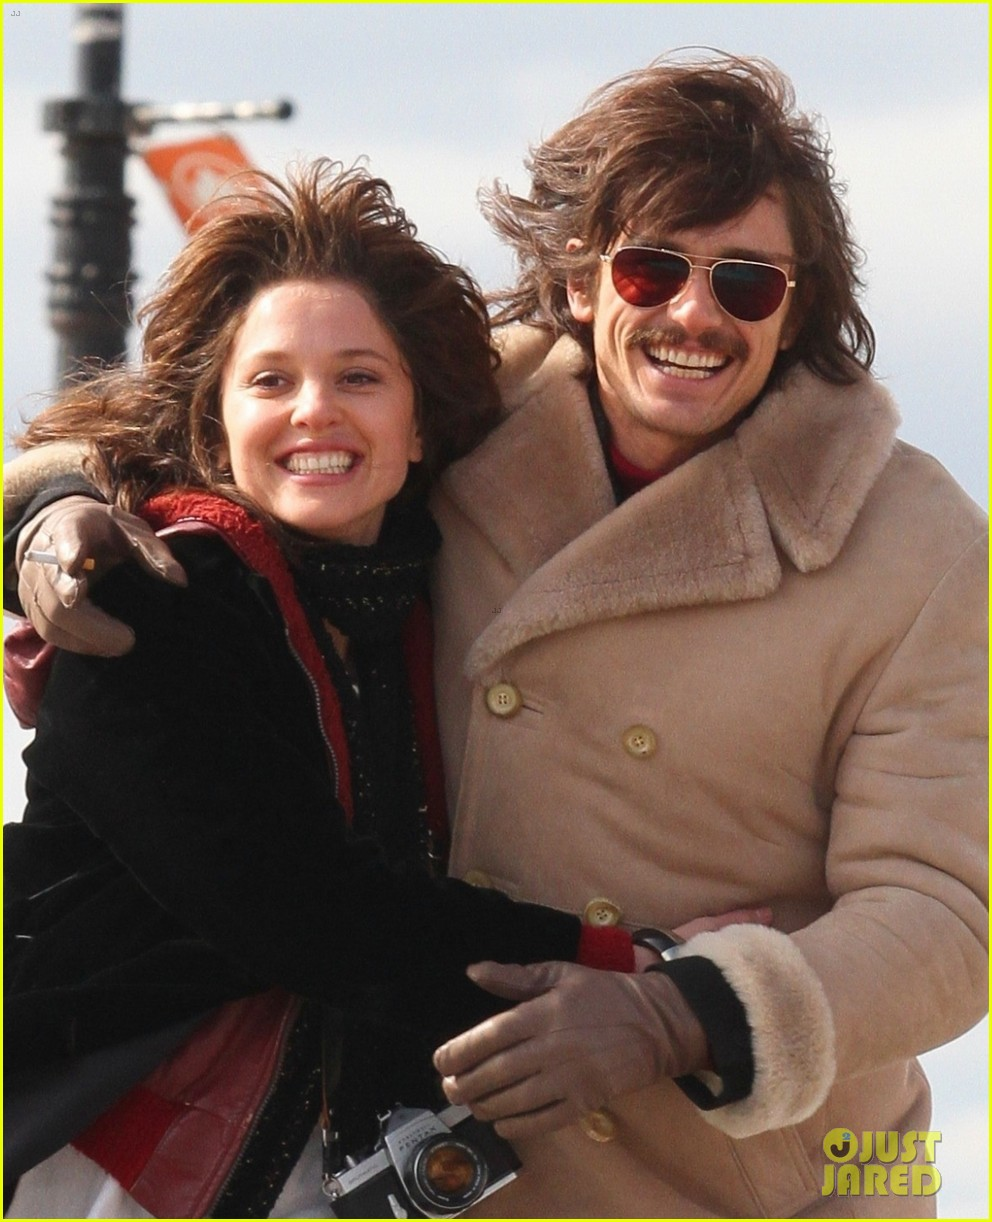 james franco films for the deuce season 2 with margarita levieva 044046951